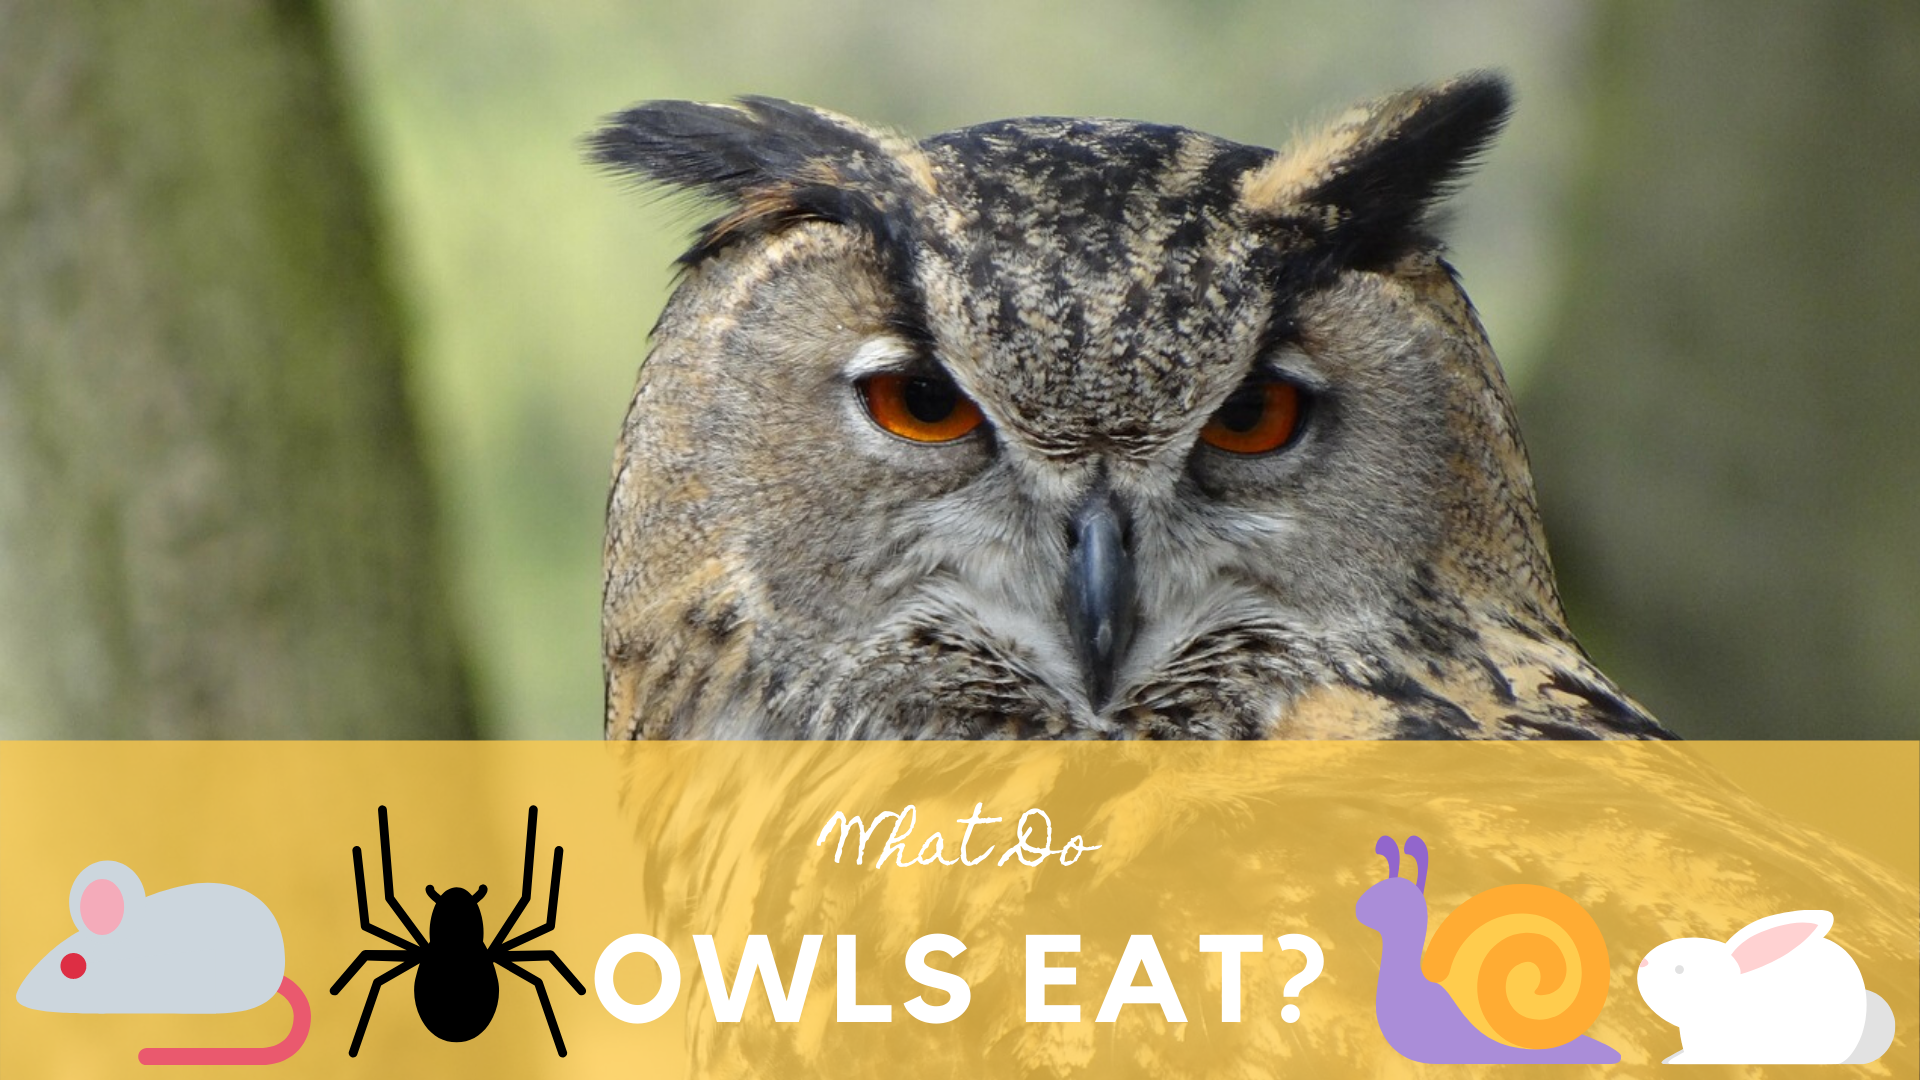 What Do Owls Eat? | Science Trends